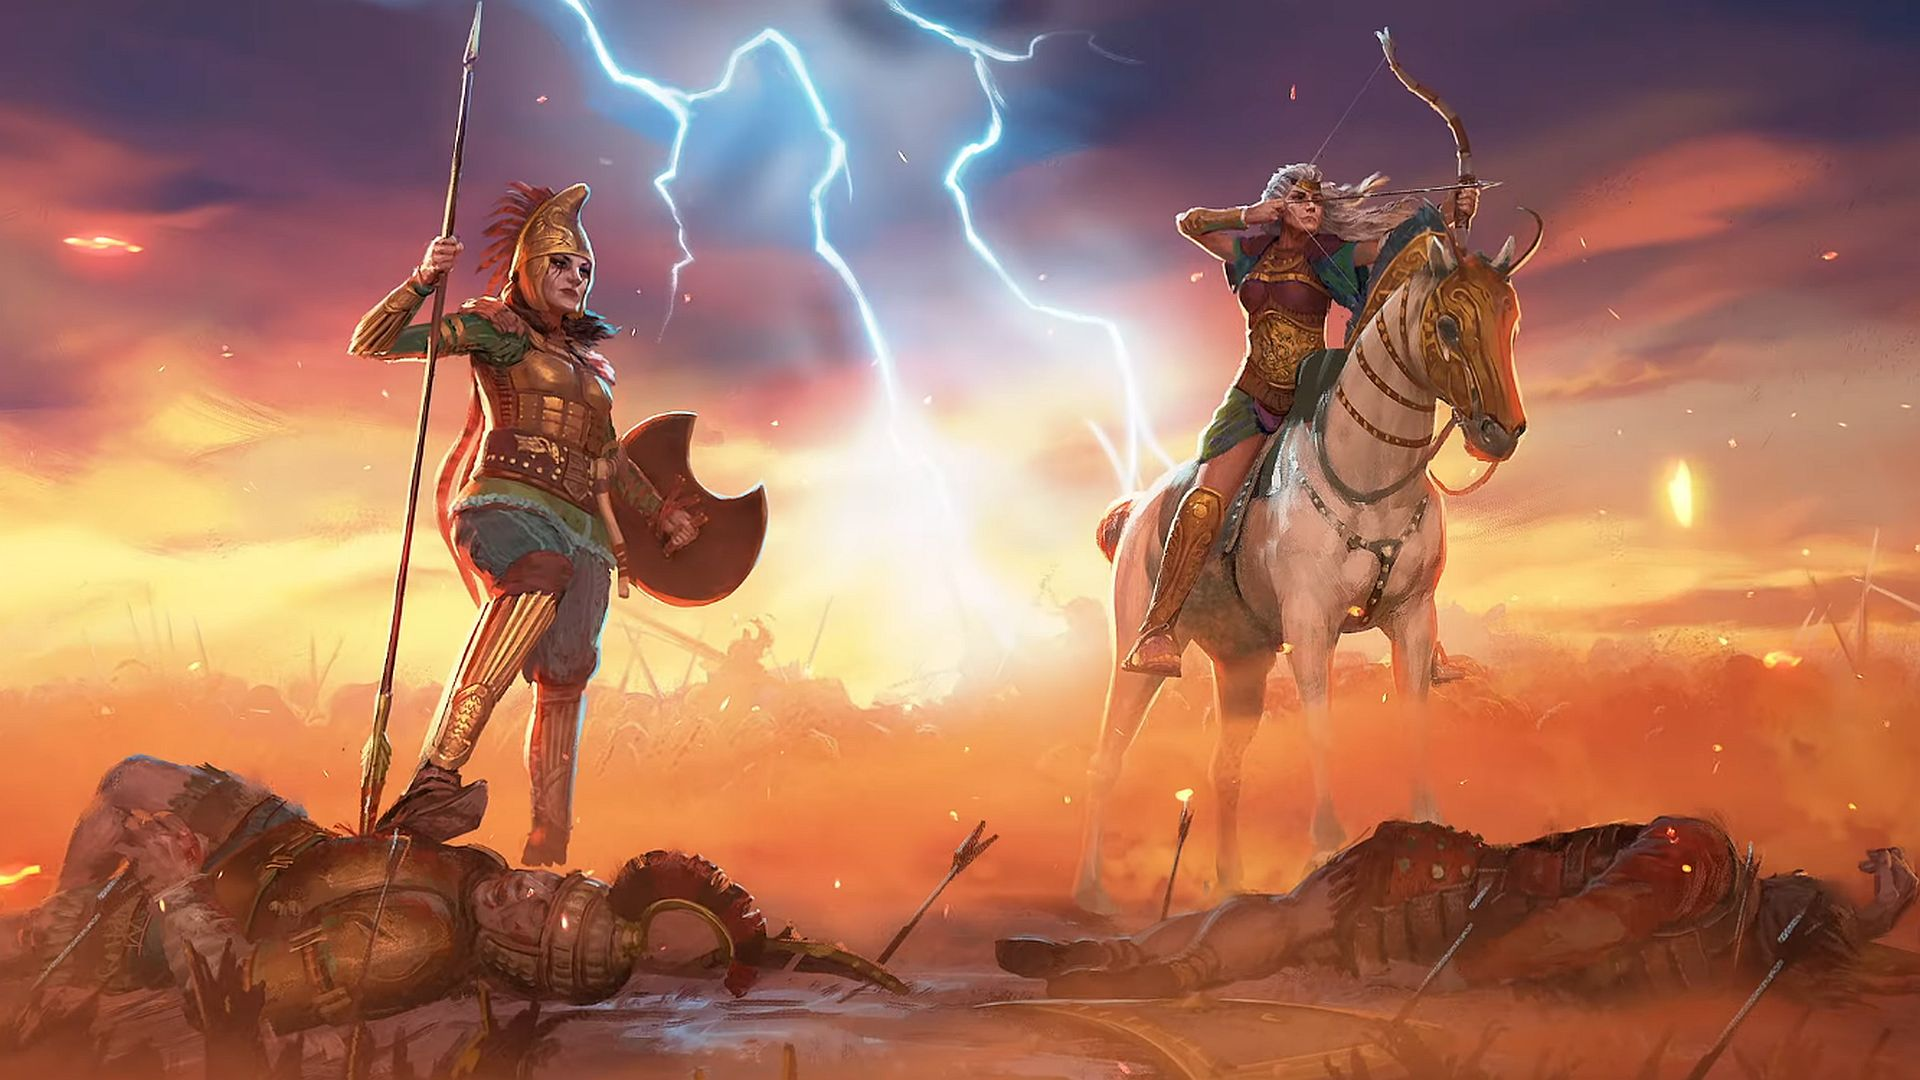 Total War Saga: Troy gets Amazons DLC pack next week, free for a limited time